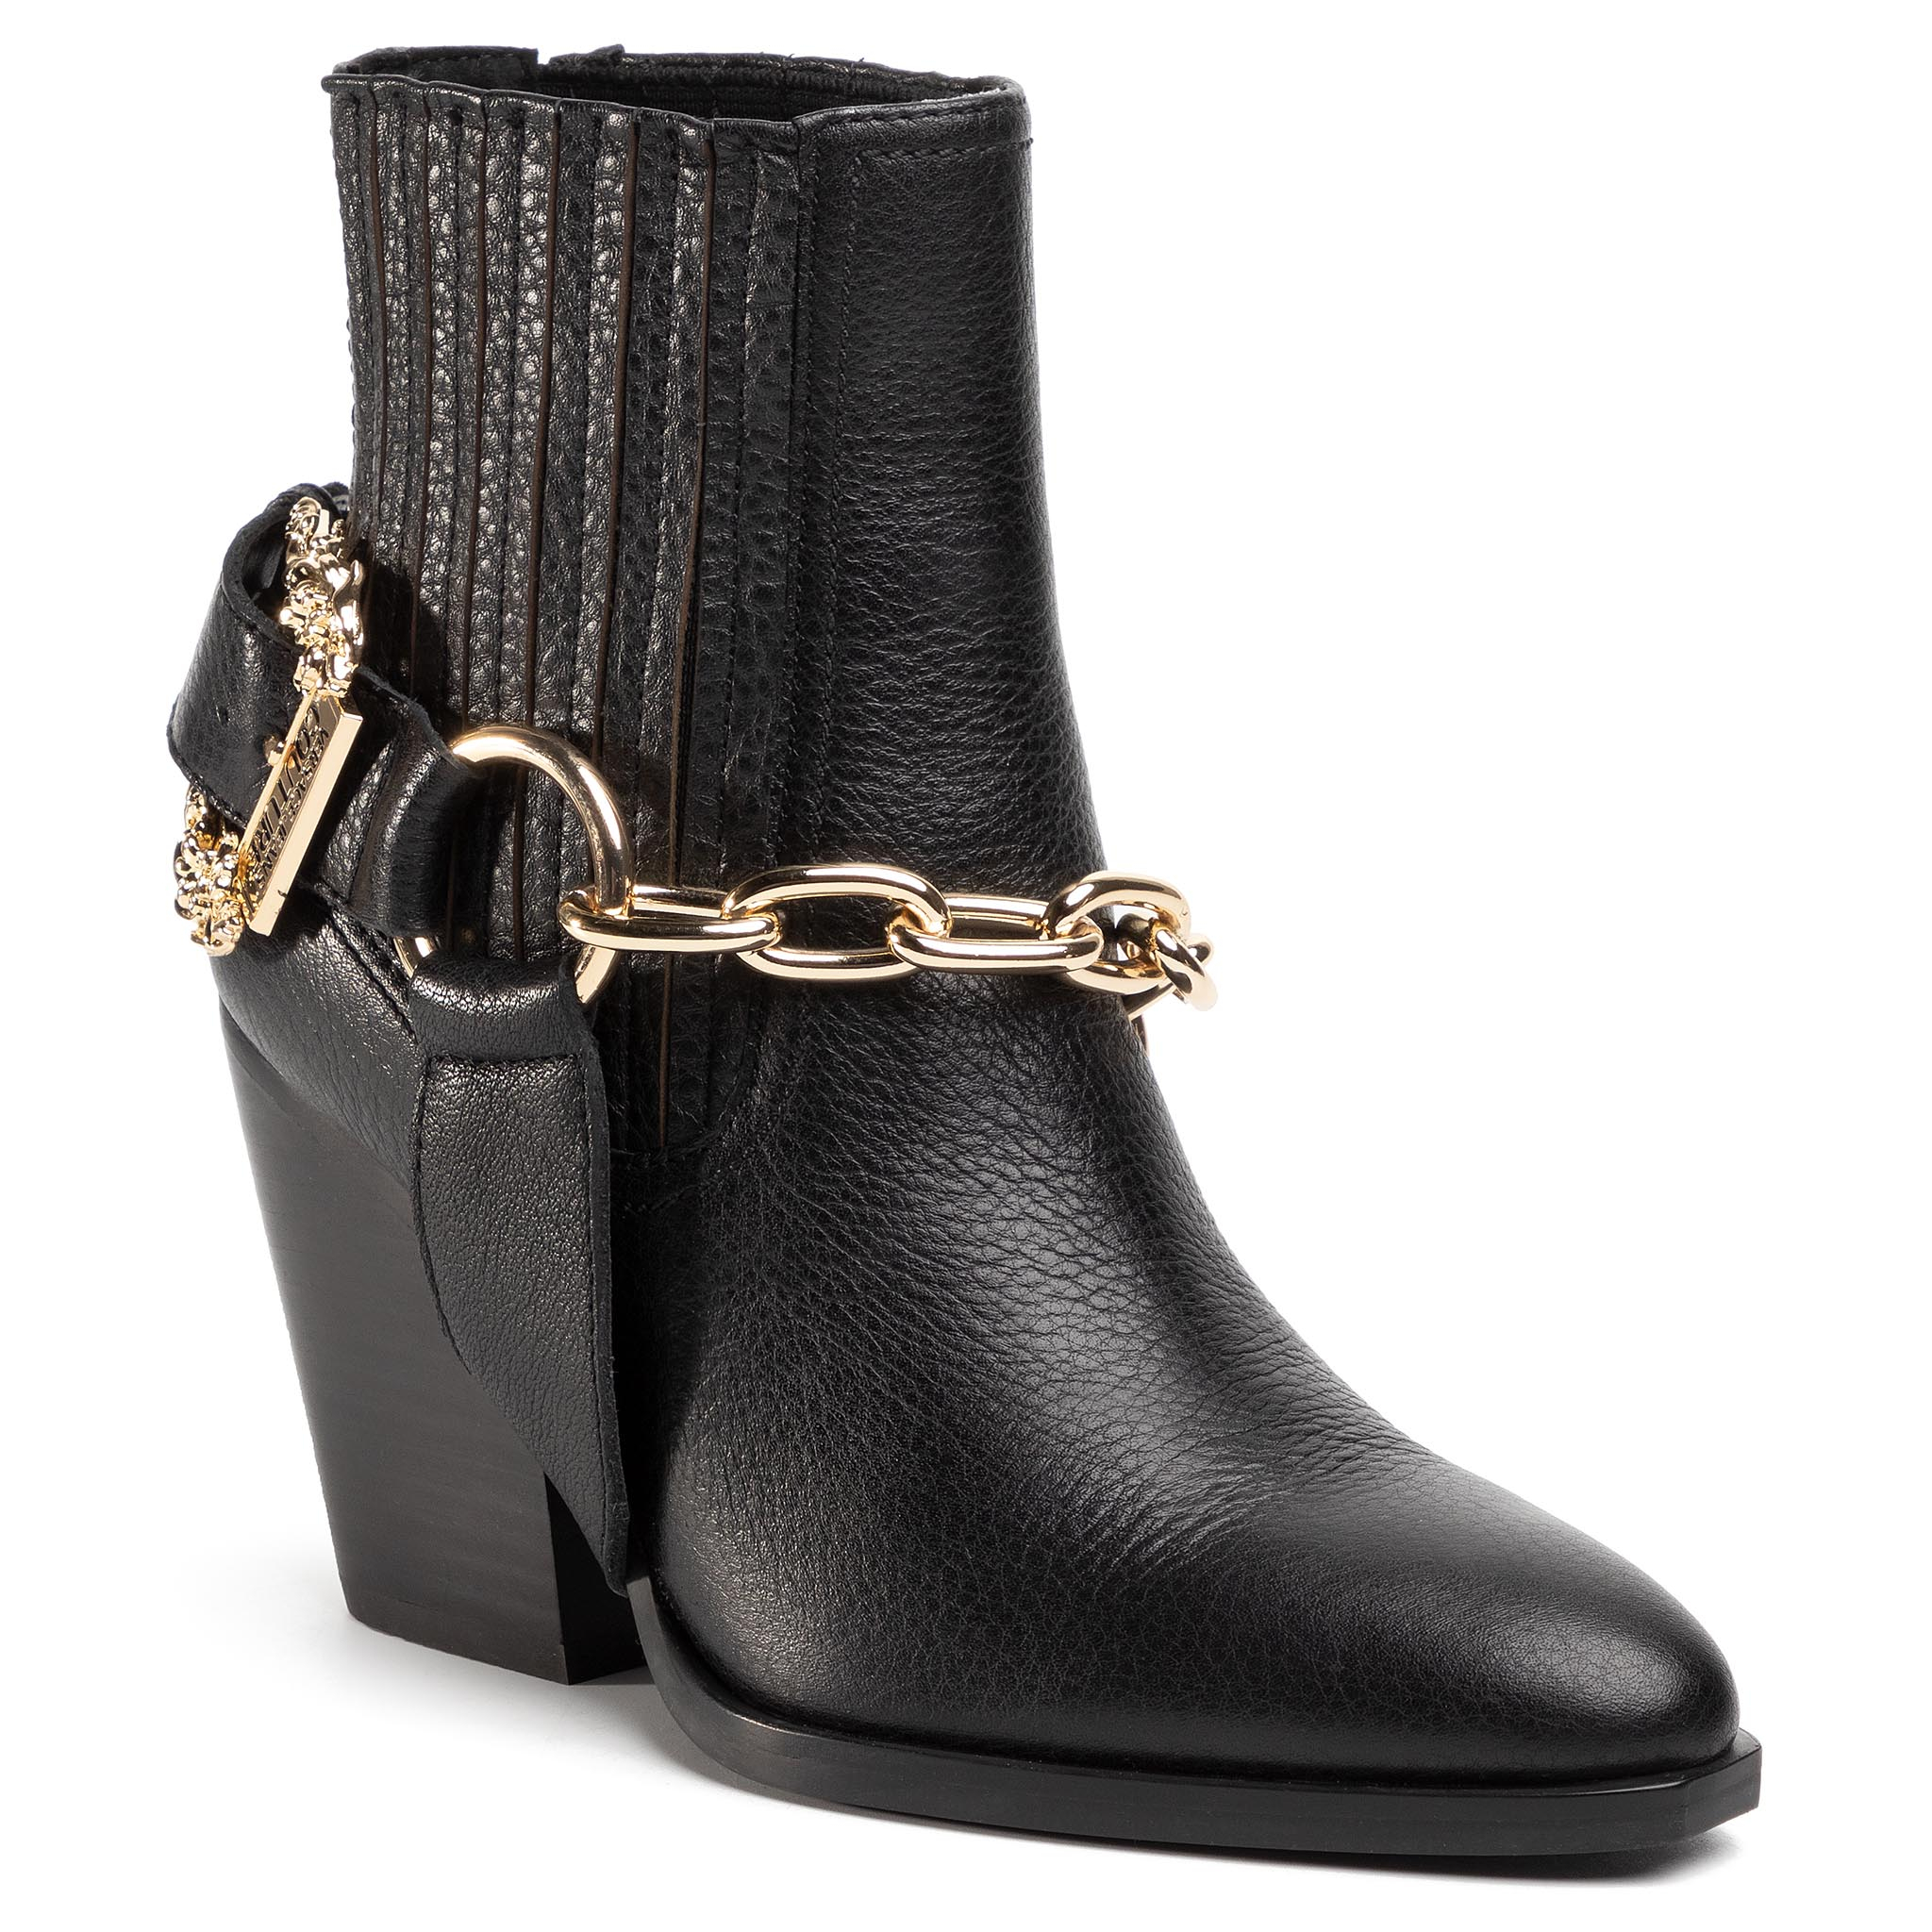 Botine VERSACE JEANS COUTURE - E0VVBS10 71342 899